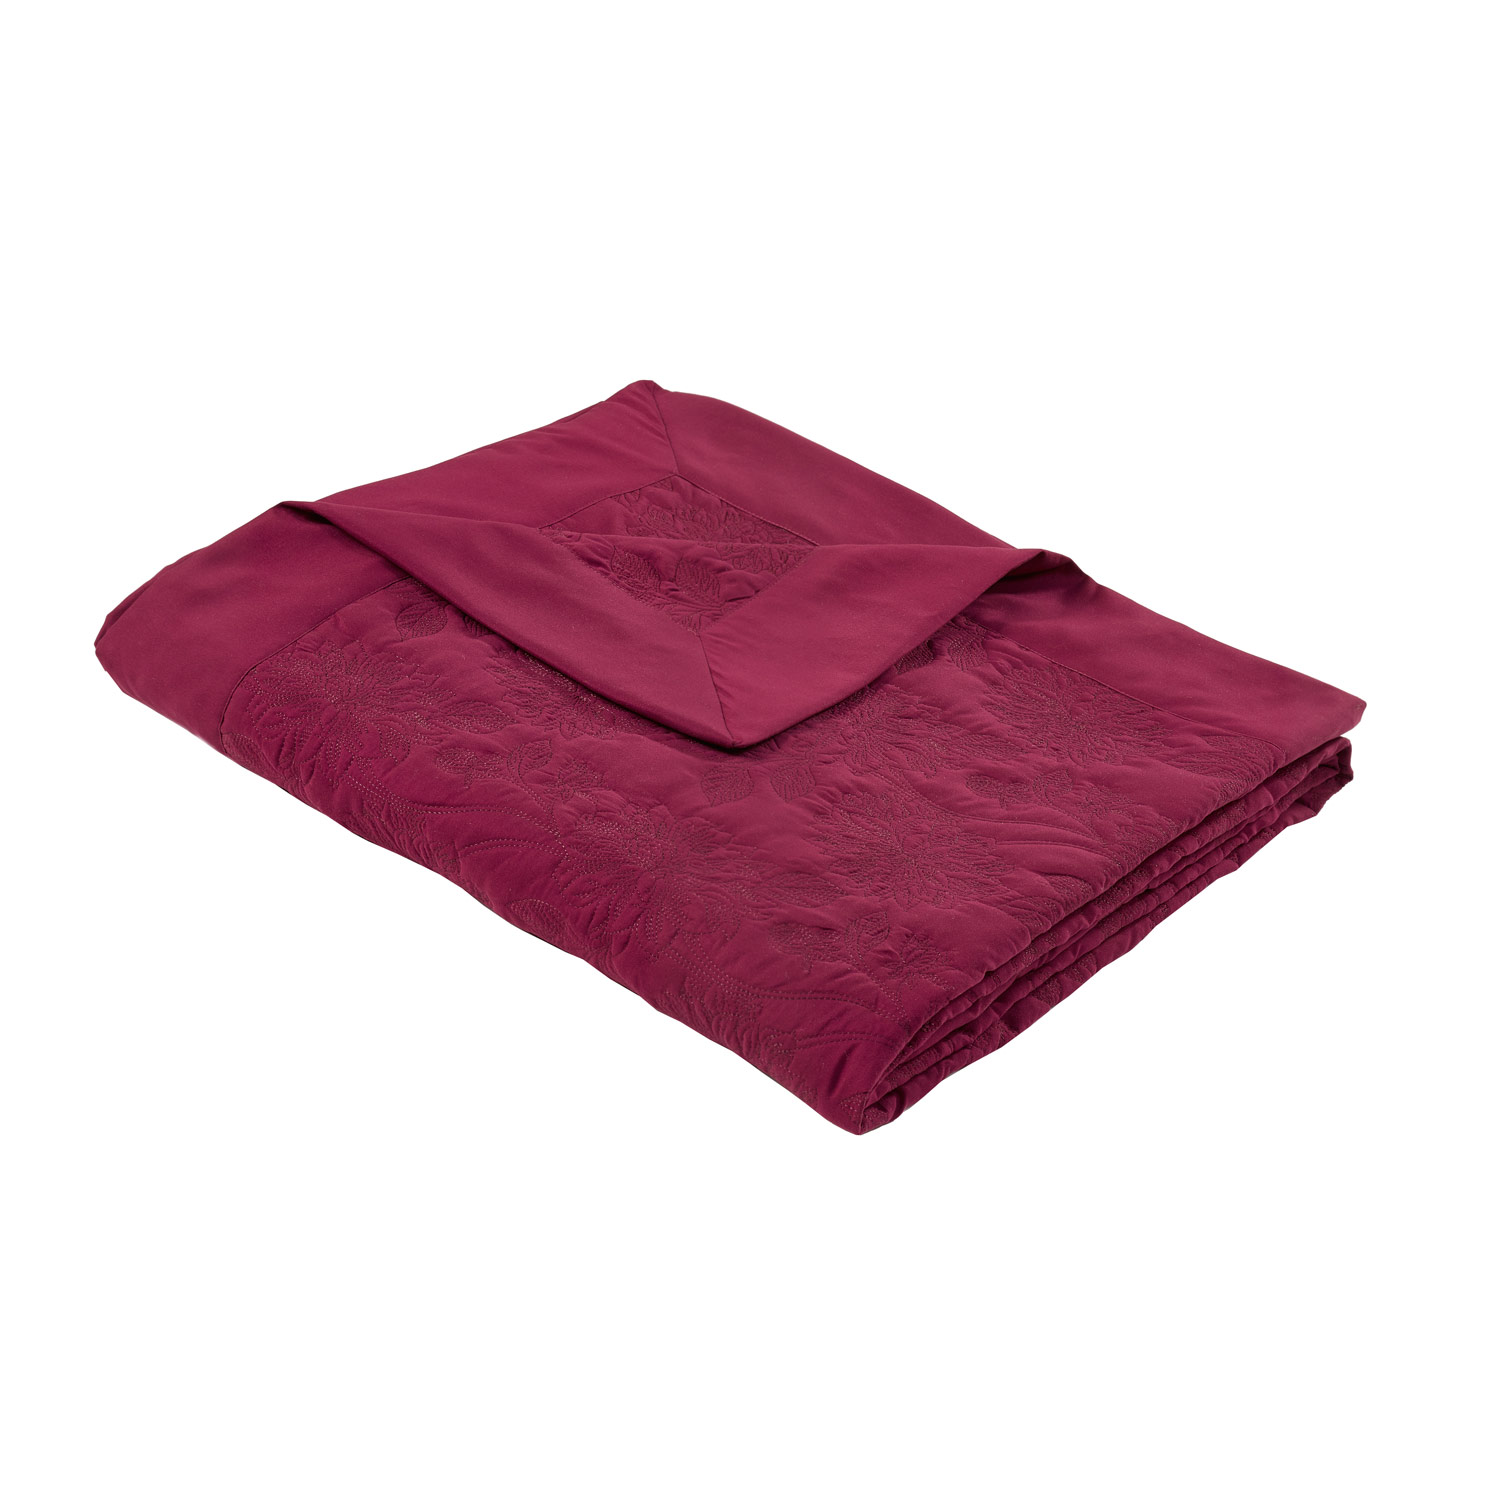 Stockists of Annabelle Raspberry Quilted Luxury Throw